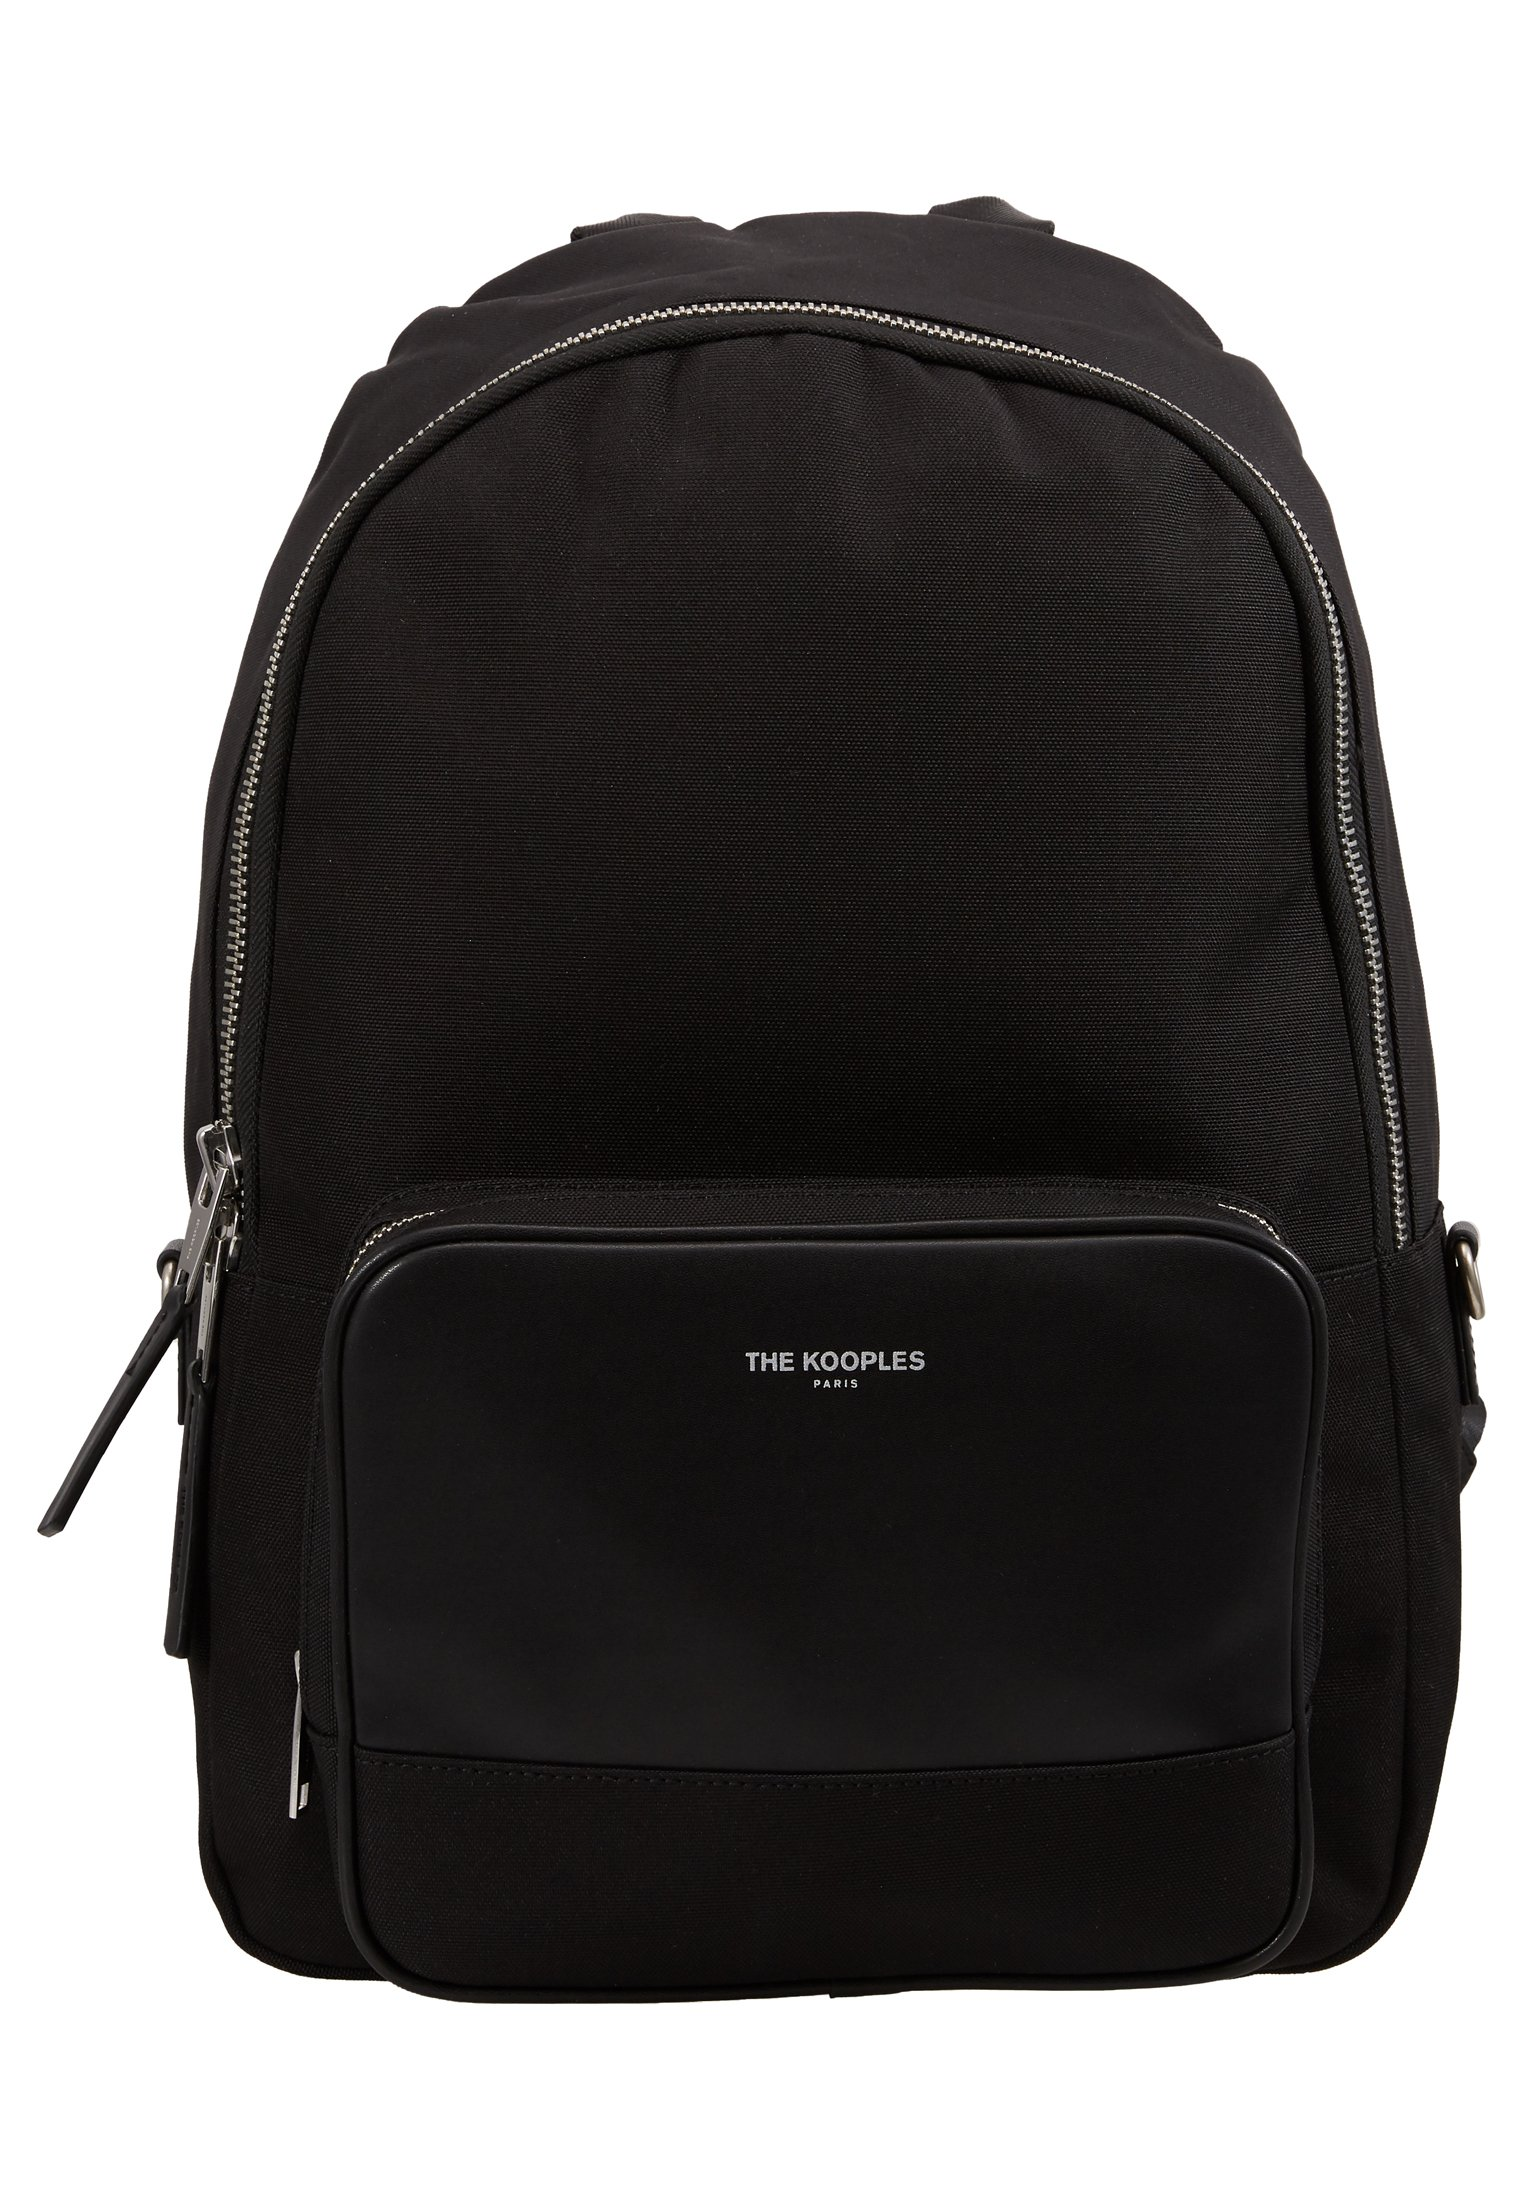 The Kooples Sac À Dos - Black